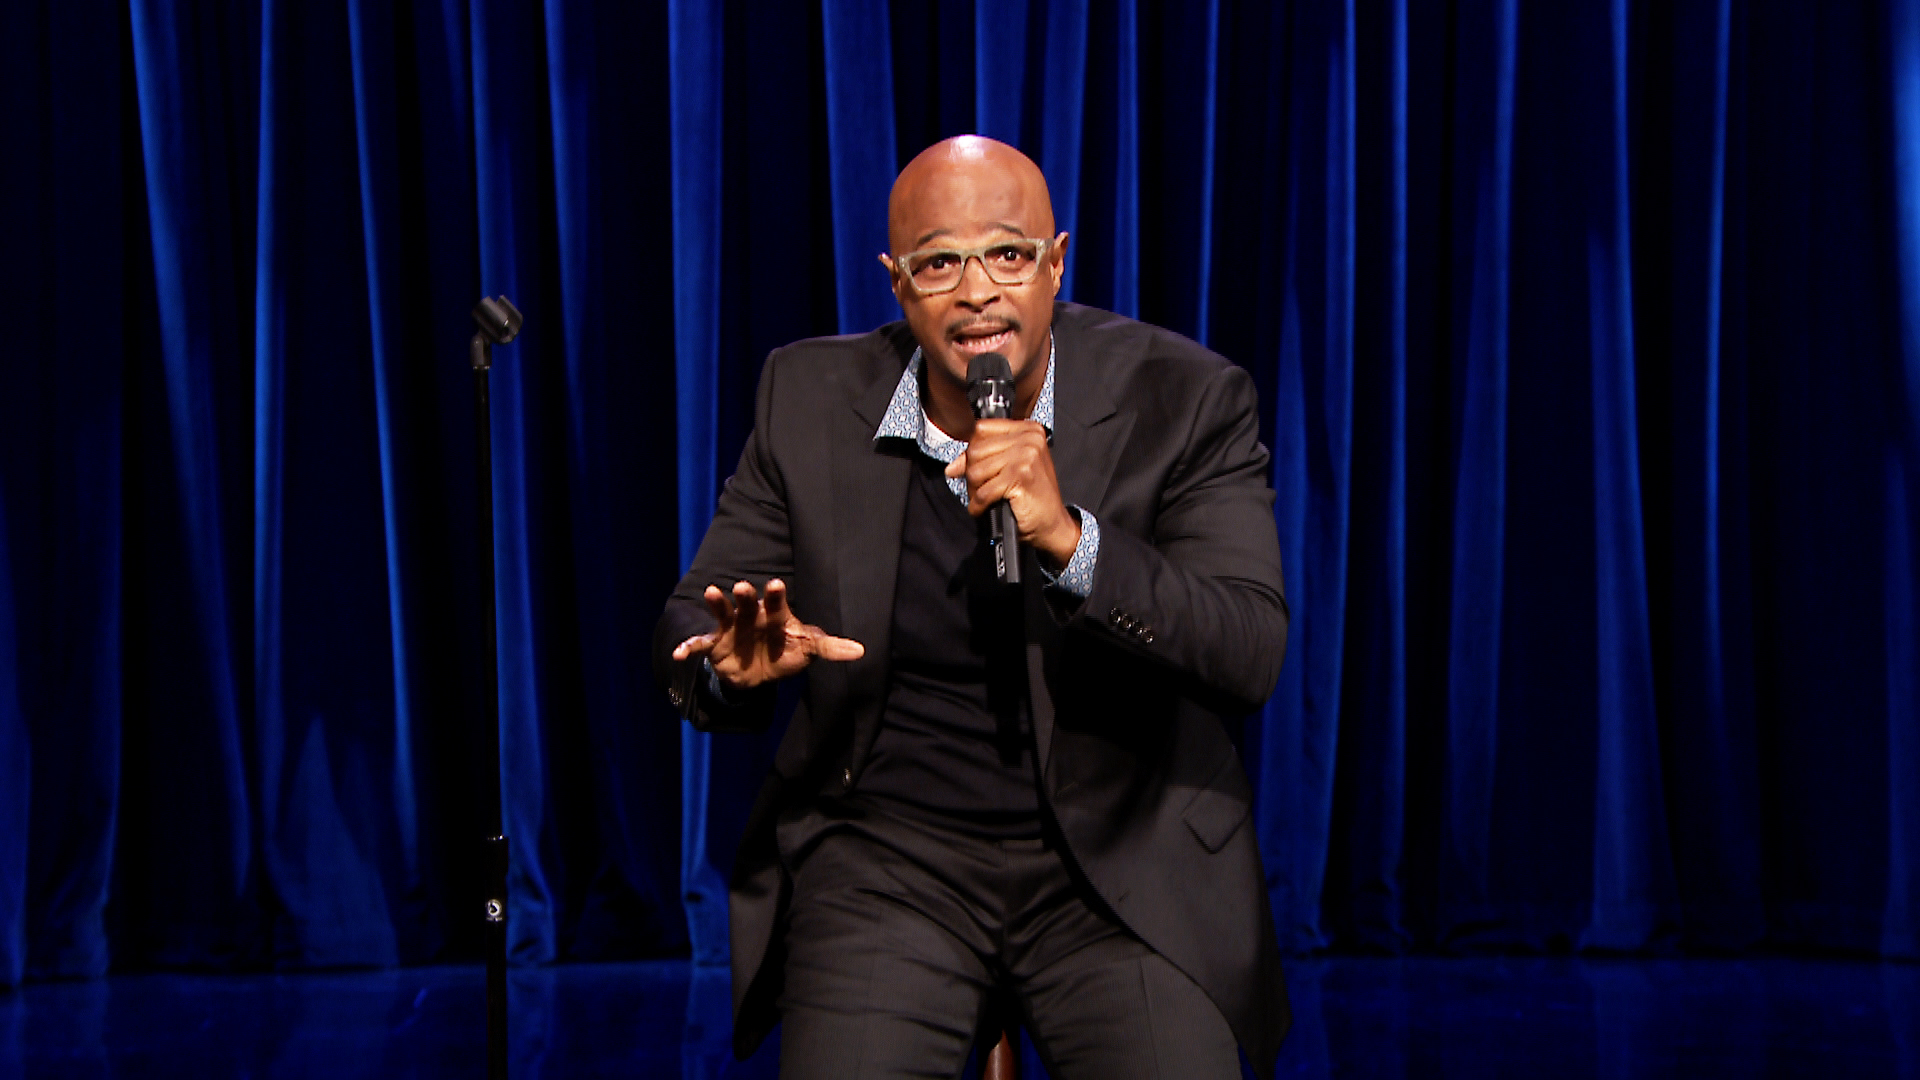 Damon Wayans Stand Up The Tonight Show